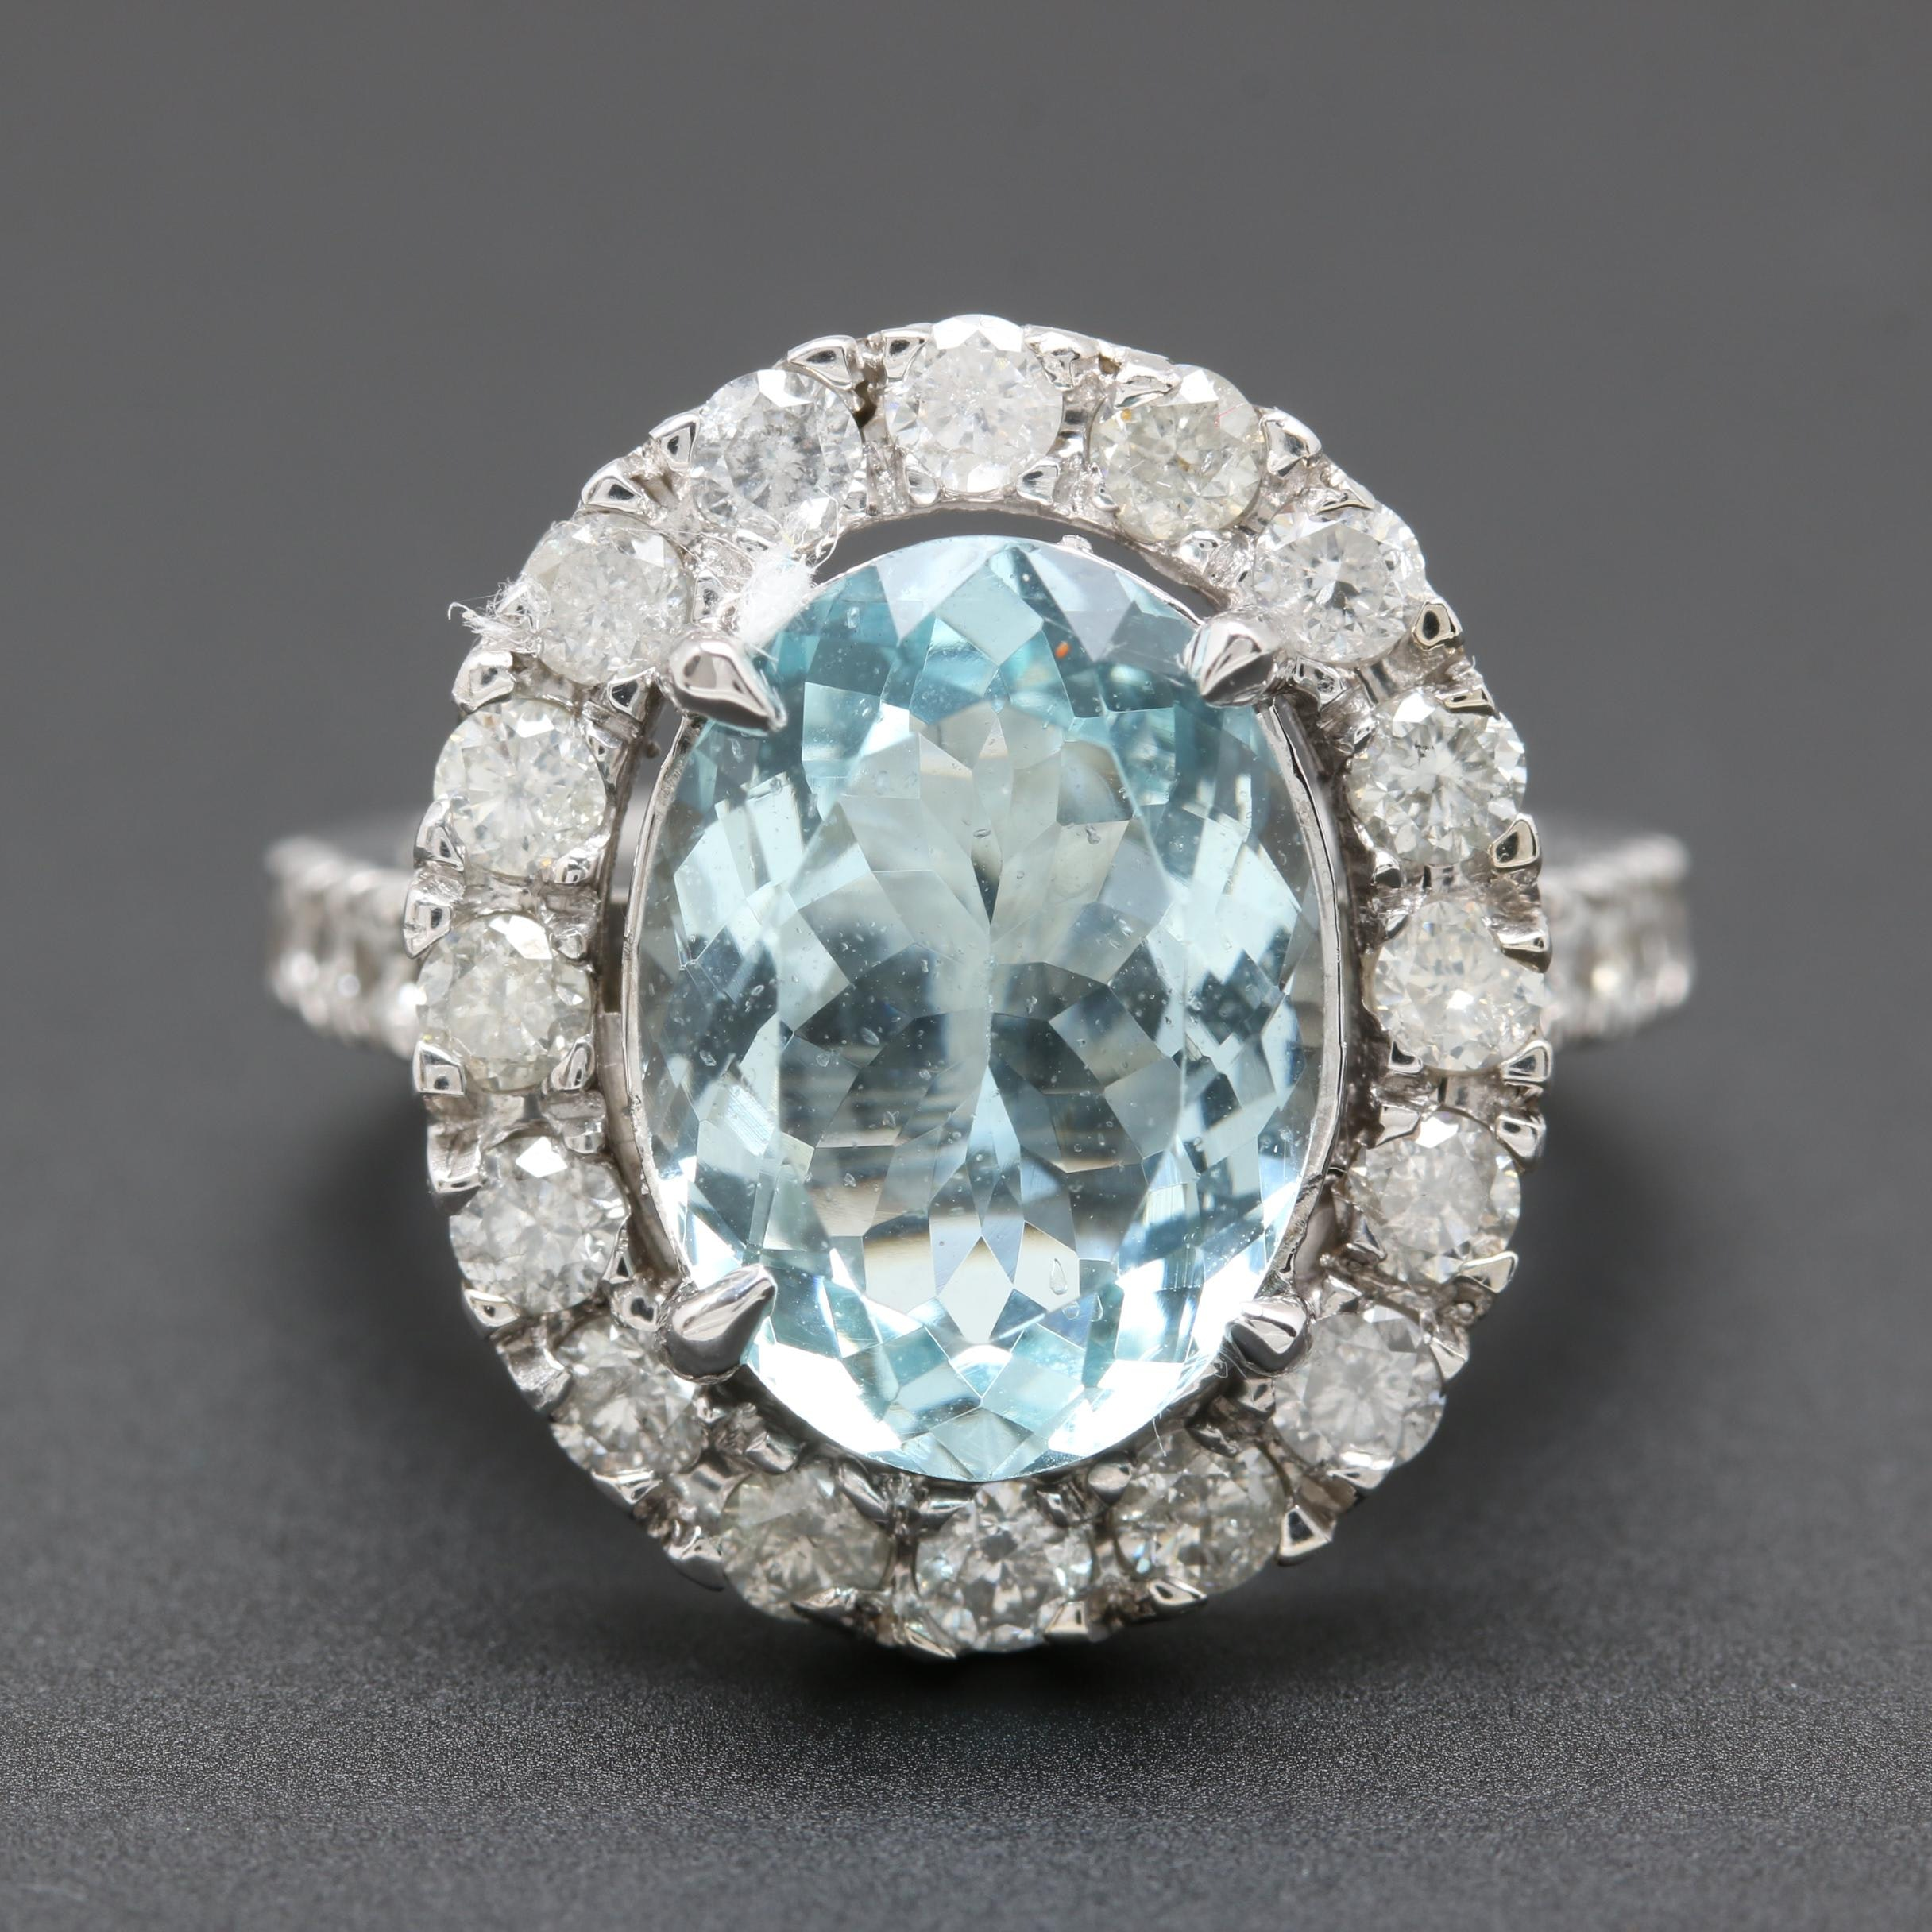 14K White Gold 4.77 CT Aquamarine and 1.56 CTW Diamond Ring